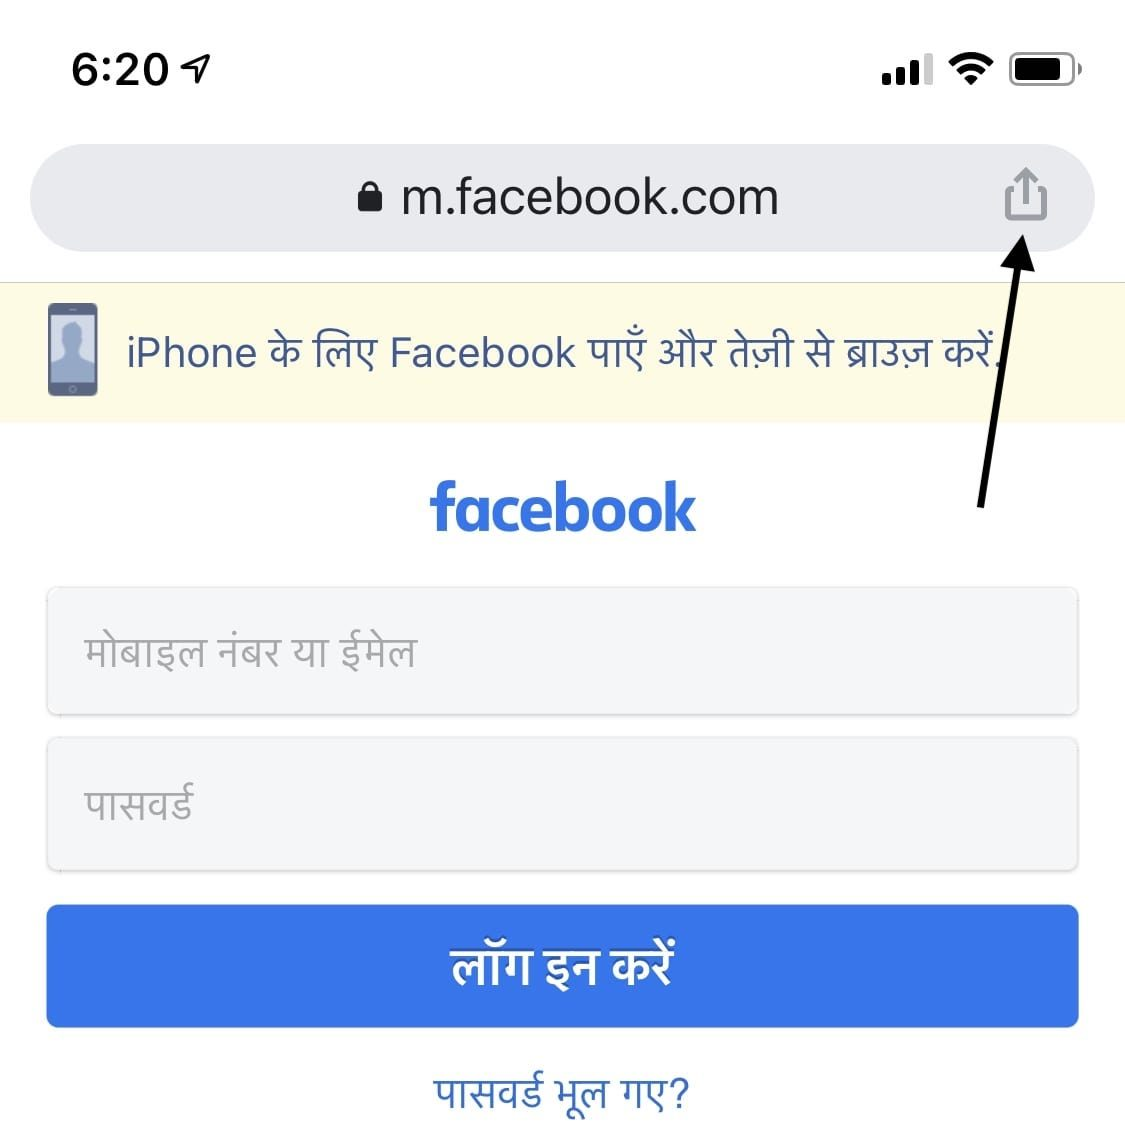 Tap on share icon in the address bar